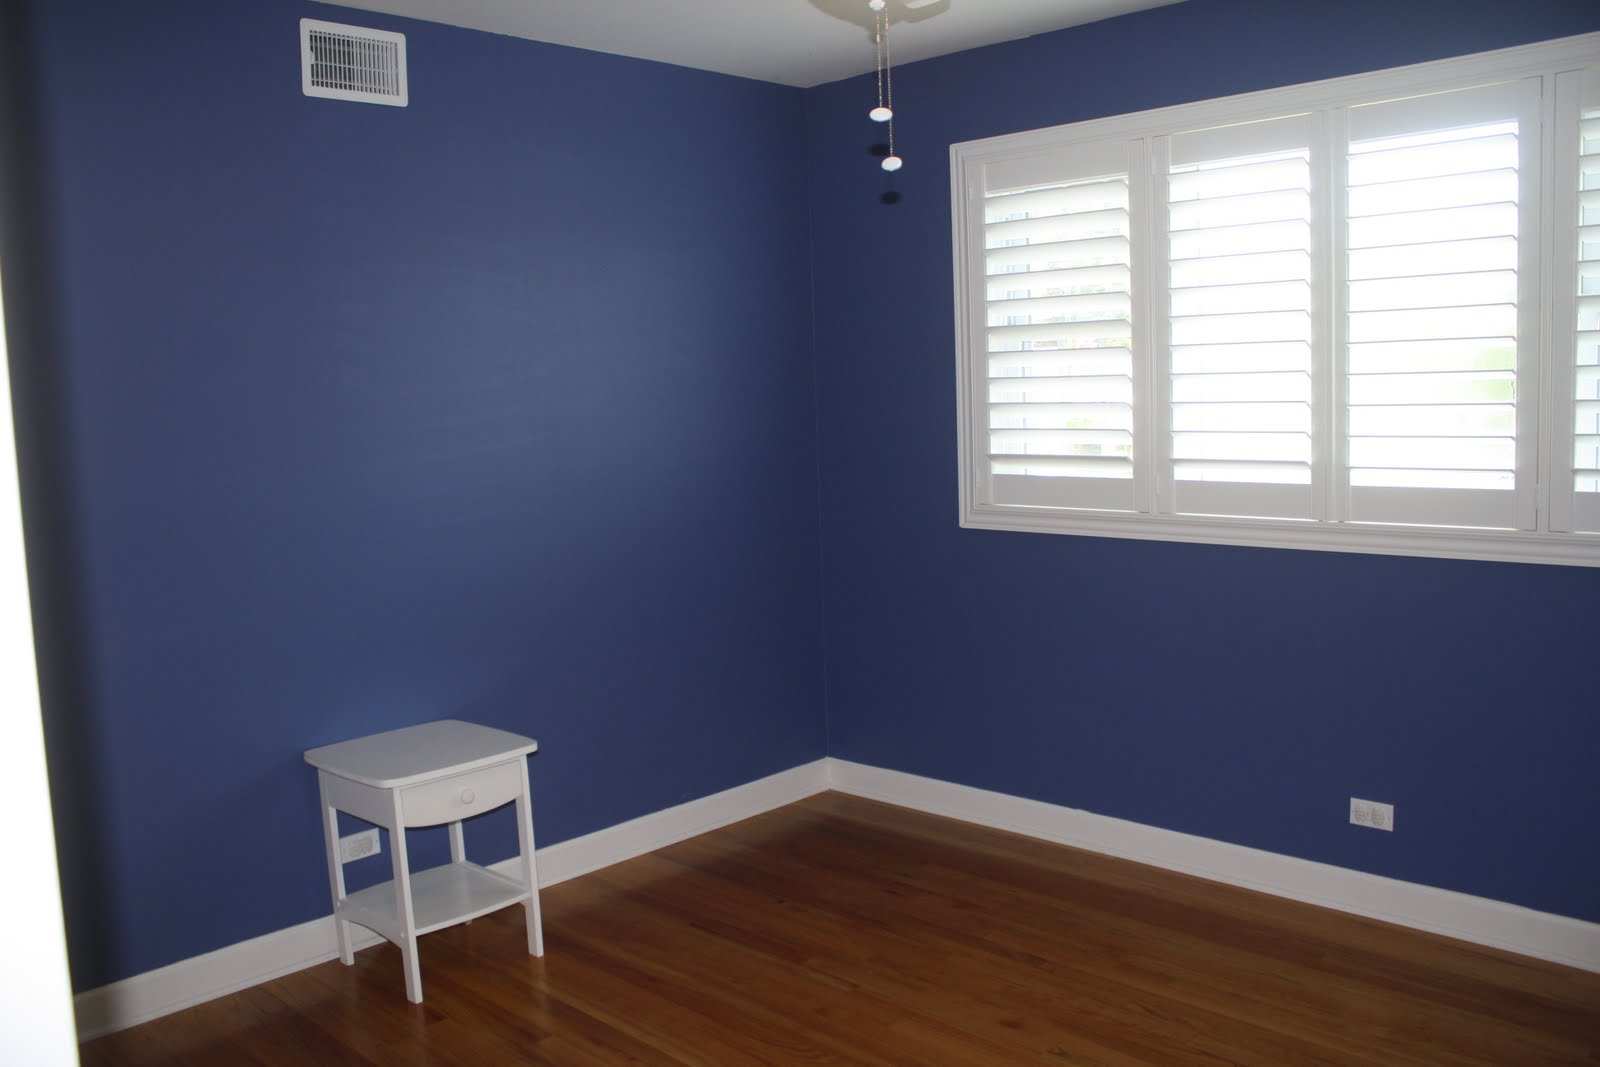 Avery and kellan 39 s adventures nursery painting is complete - How we paint your room ...